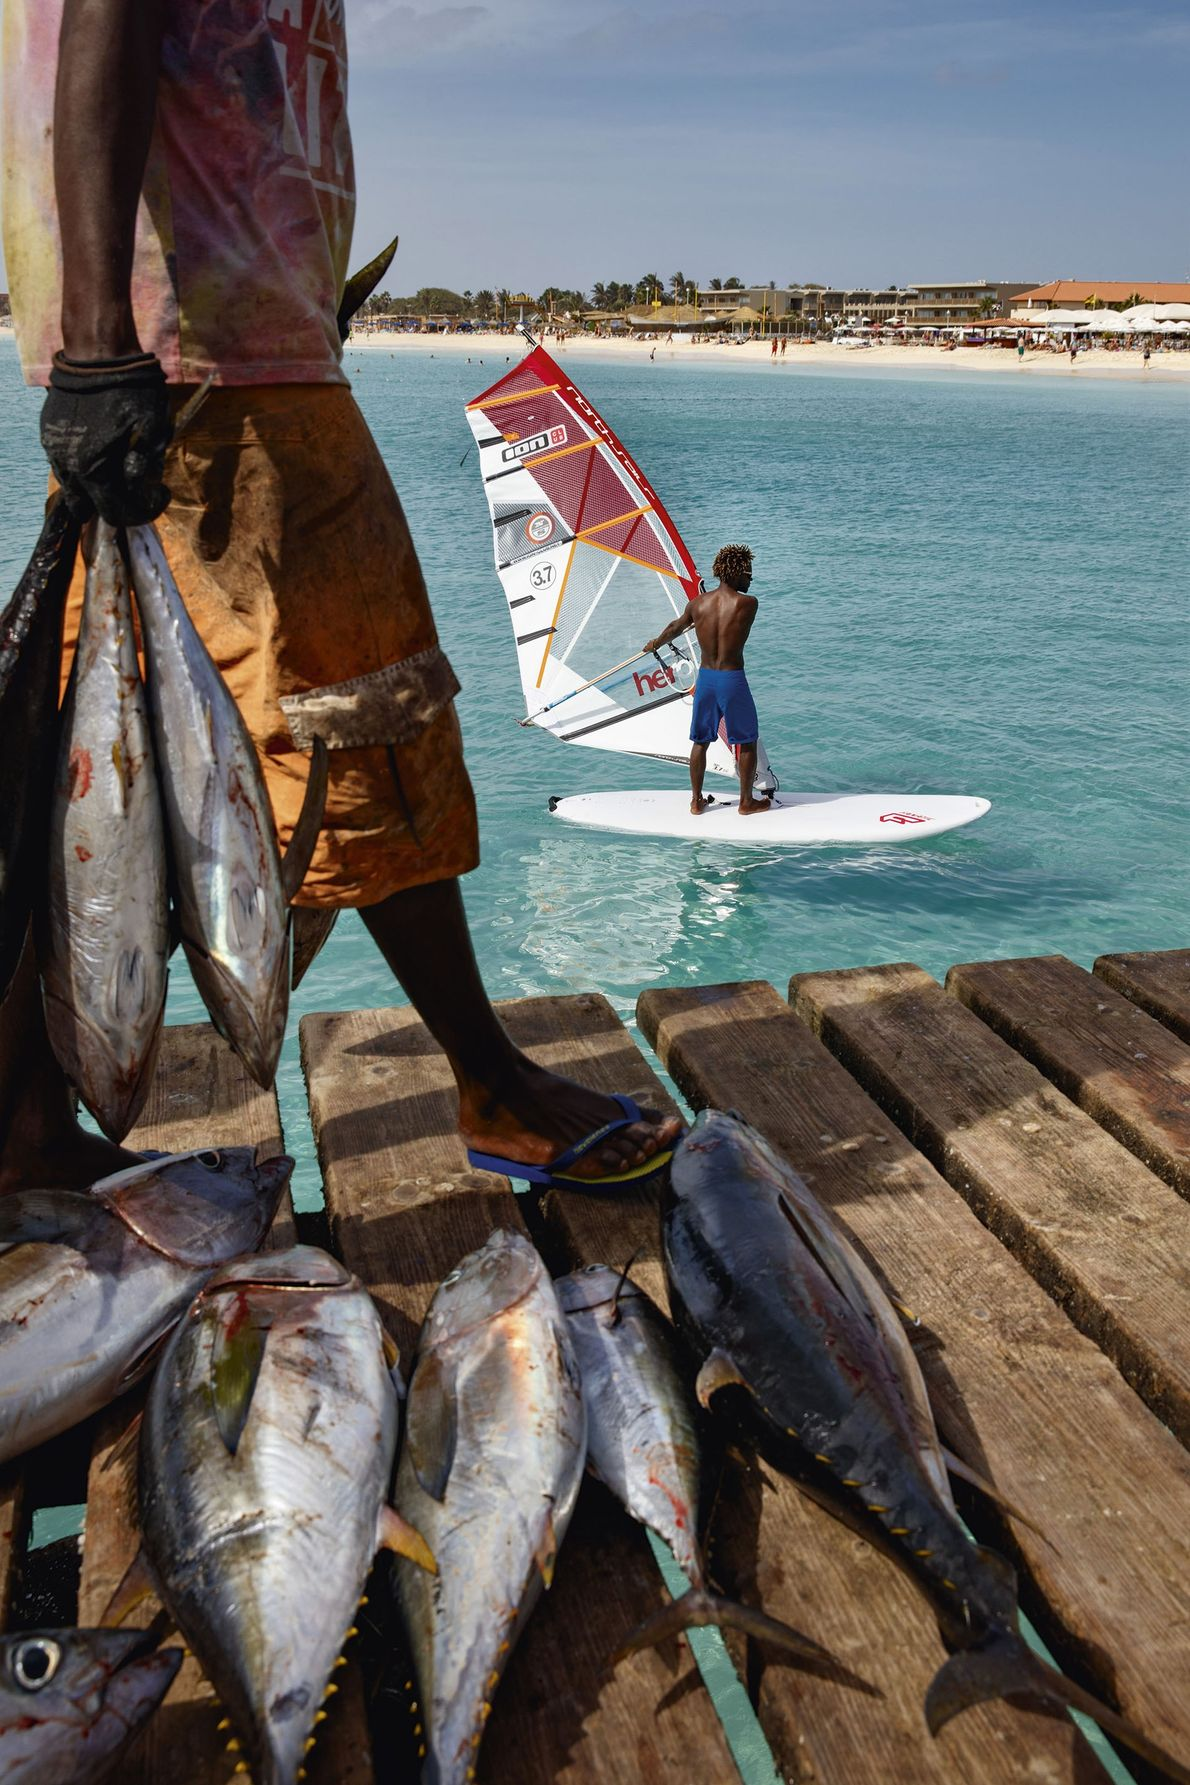 Windsurfing and the day's catch.